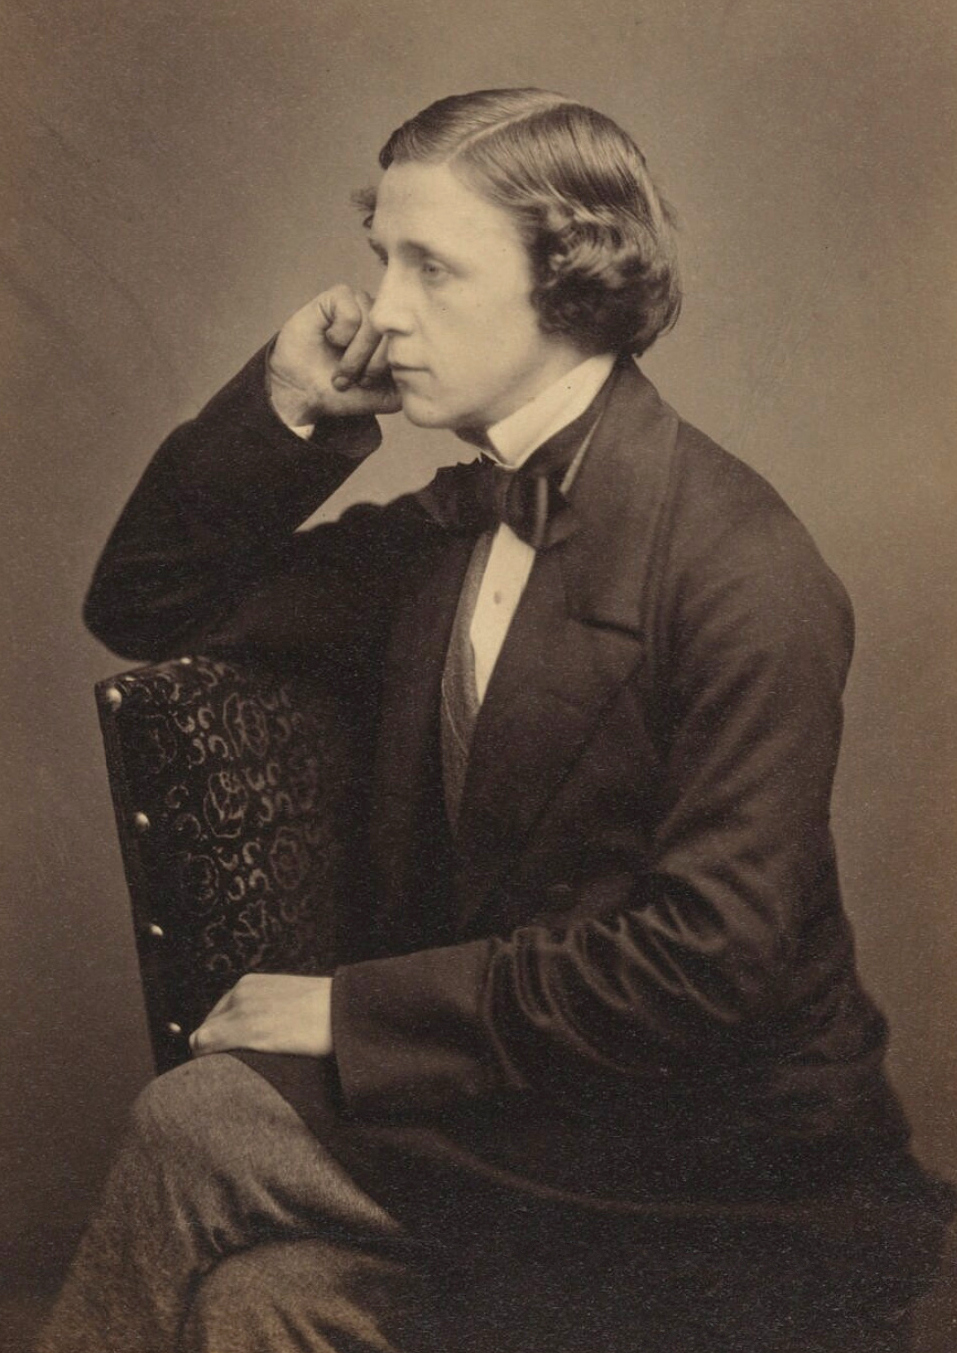 Image courtesy https://www.npg.org.uk/collections/search/portrait/mw01891/Lewis-Carroll?LinkID=mp01321&role=sit&displayNo=60&rNo=2.